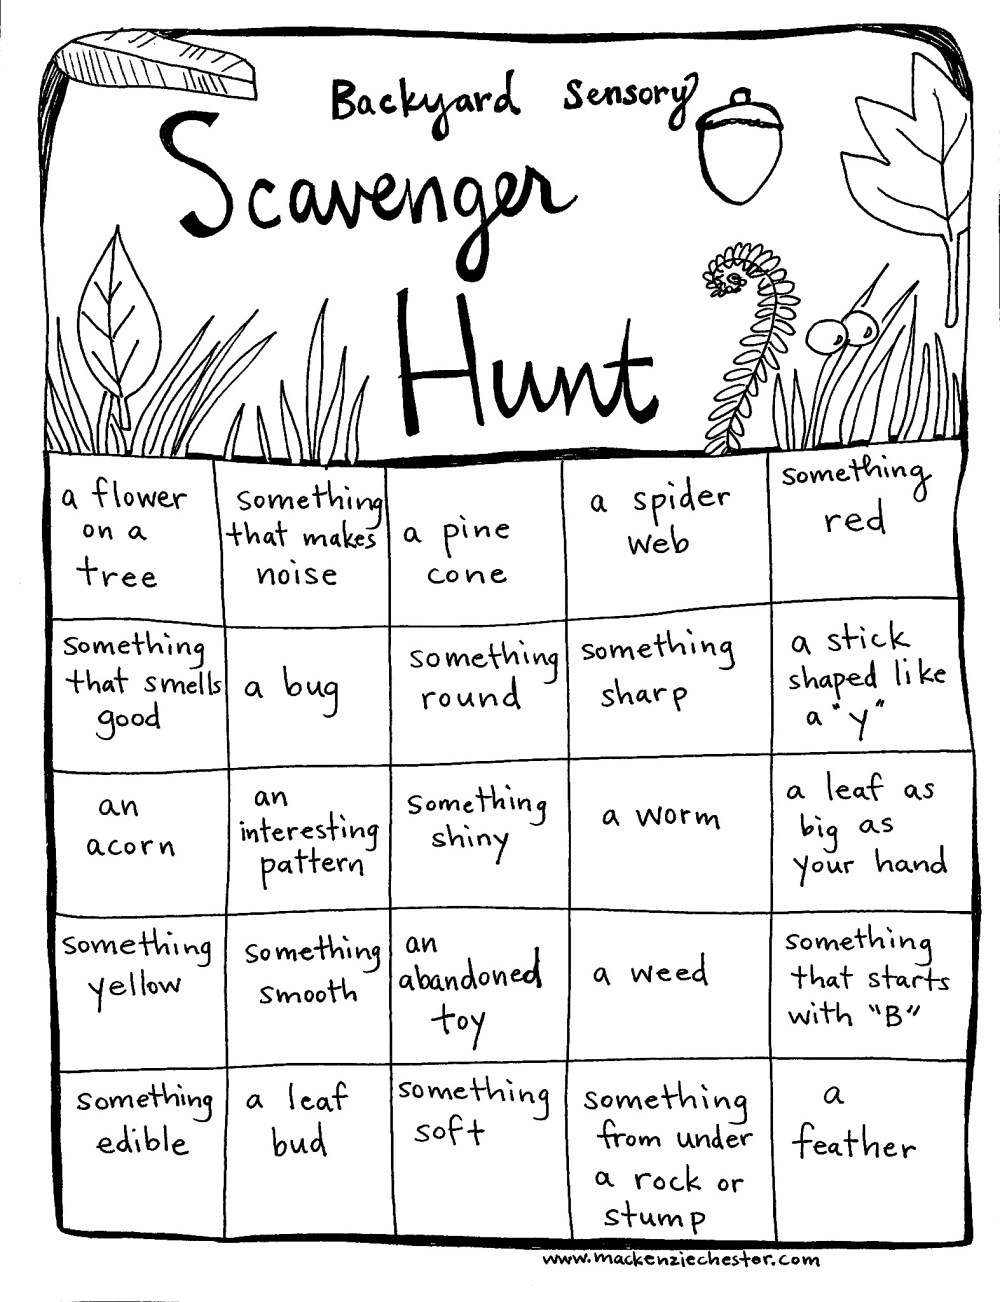 sensory processing scavenger hunt free printable resources outdoor activities creative family culture, creative family idea box, sacred everyday